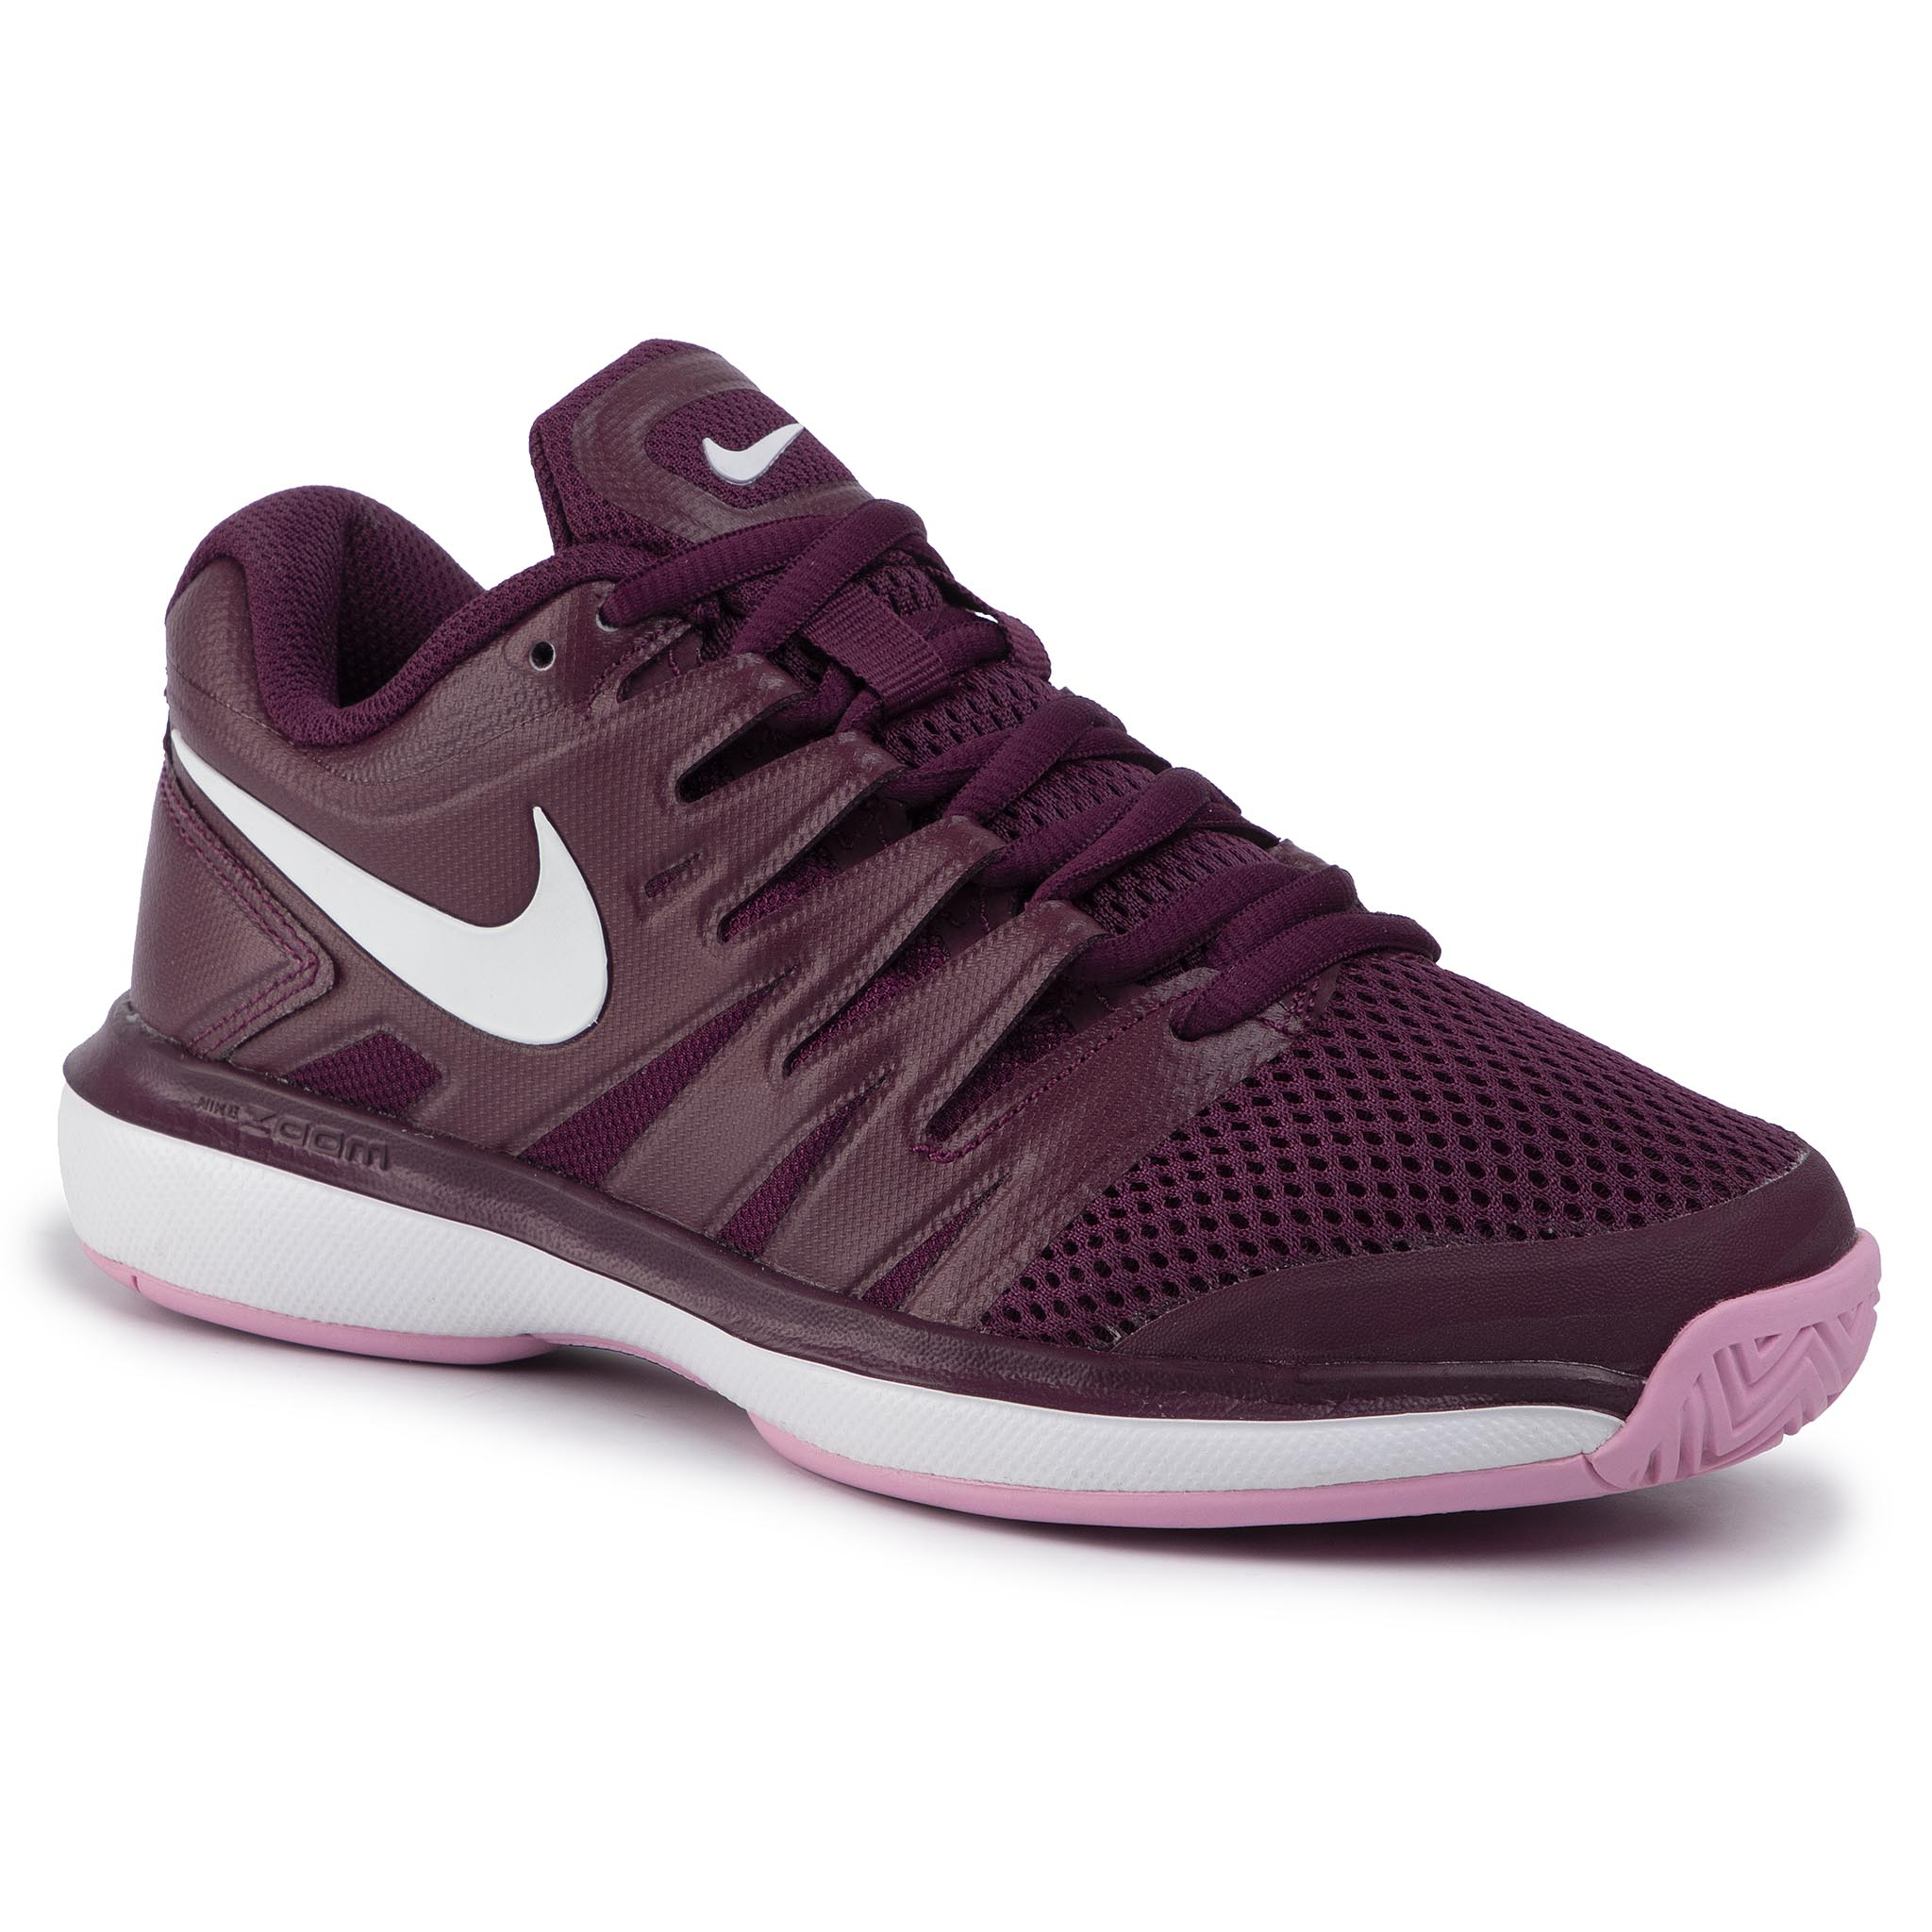 Pantofi Nike - Air Zoom Prestige Hc Aa8024 603 Bordeaux/White/Pink Rise imagine epantofi.ro 2021